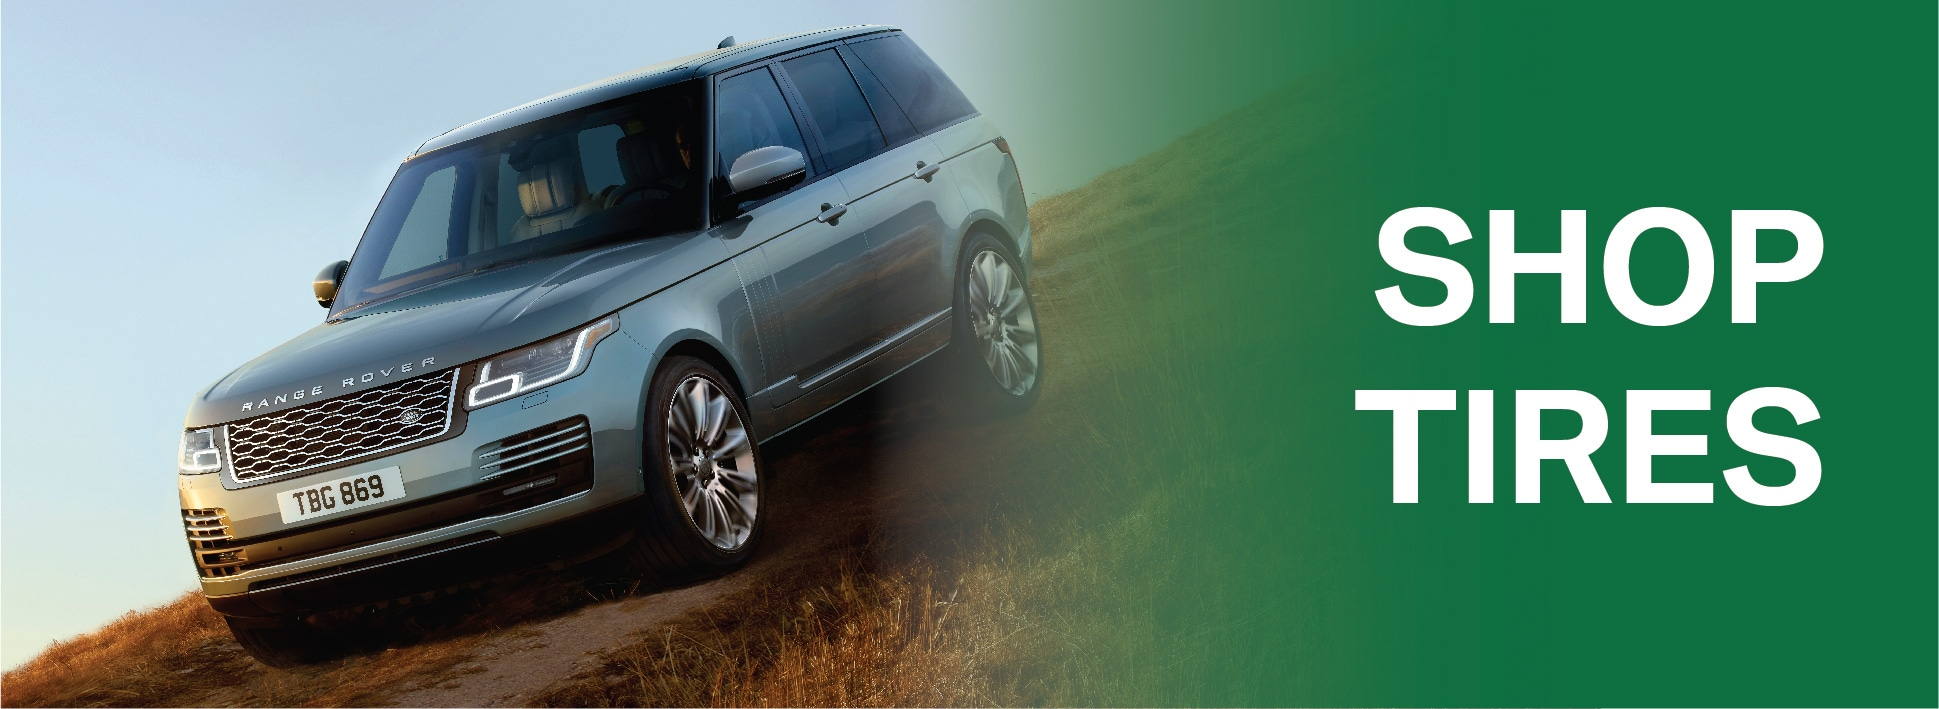 LAND ROVER PARTS AND ACCESSORIES IN LAKE BLUFF IL | Land Rover Lake